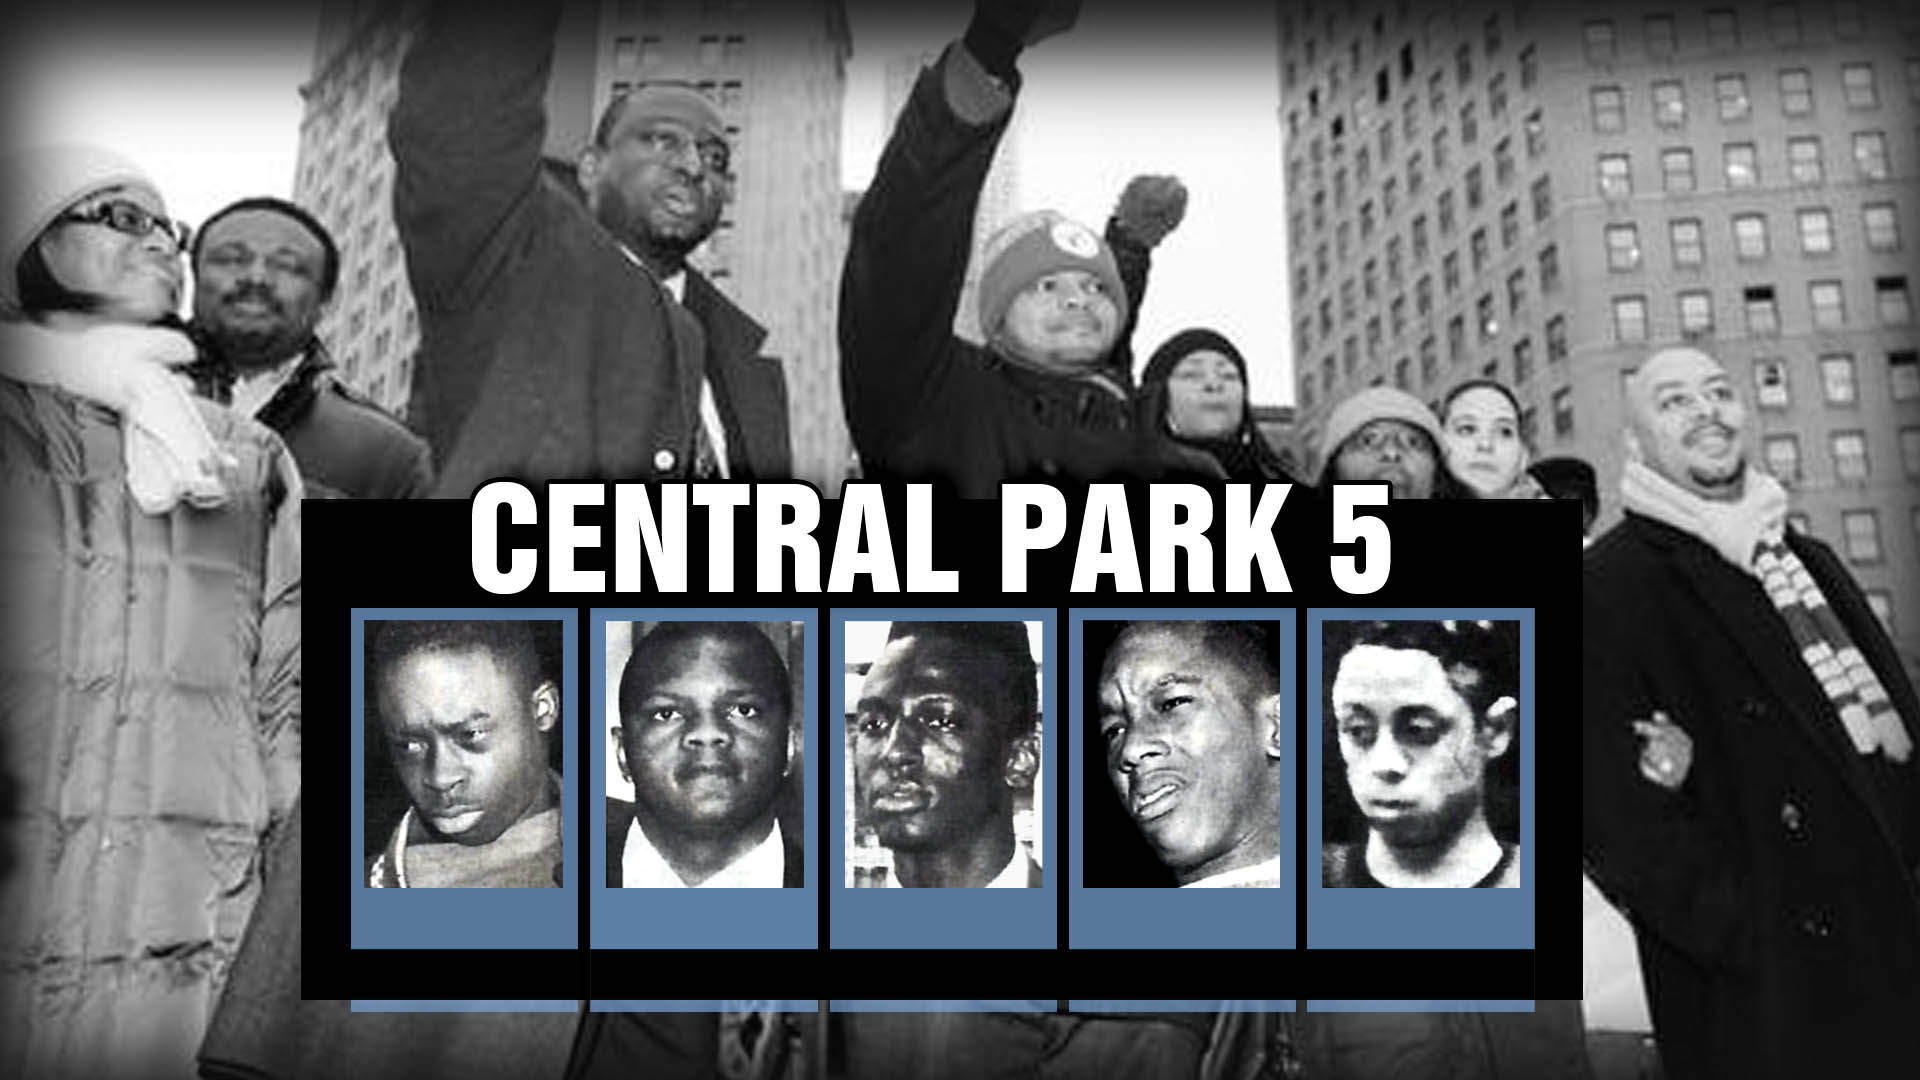 by 'Central Park 5' ends in $40 million settlement | PBS NewsHour